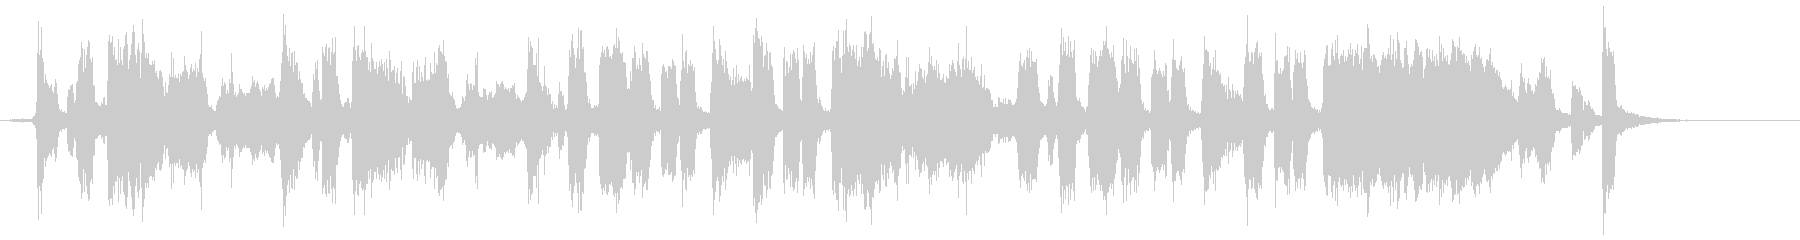 Birthday song with 4 beat a cappella's unreproduced waveform